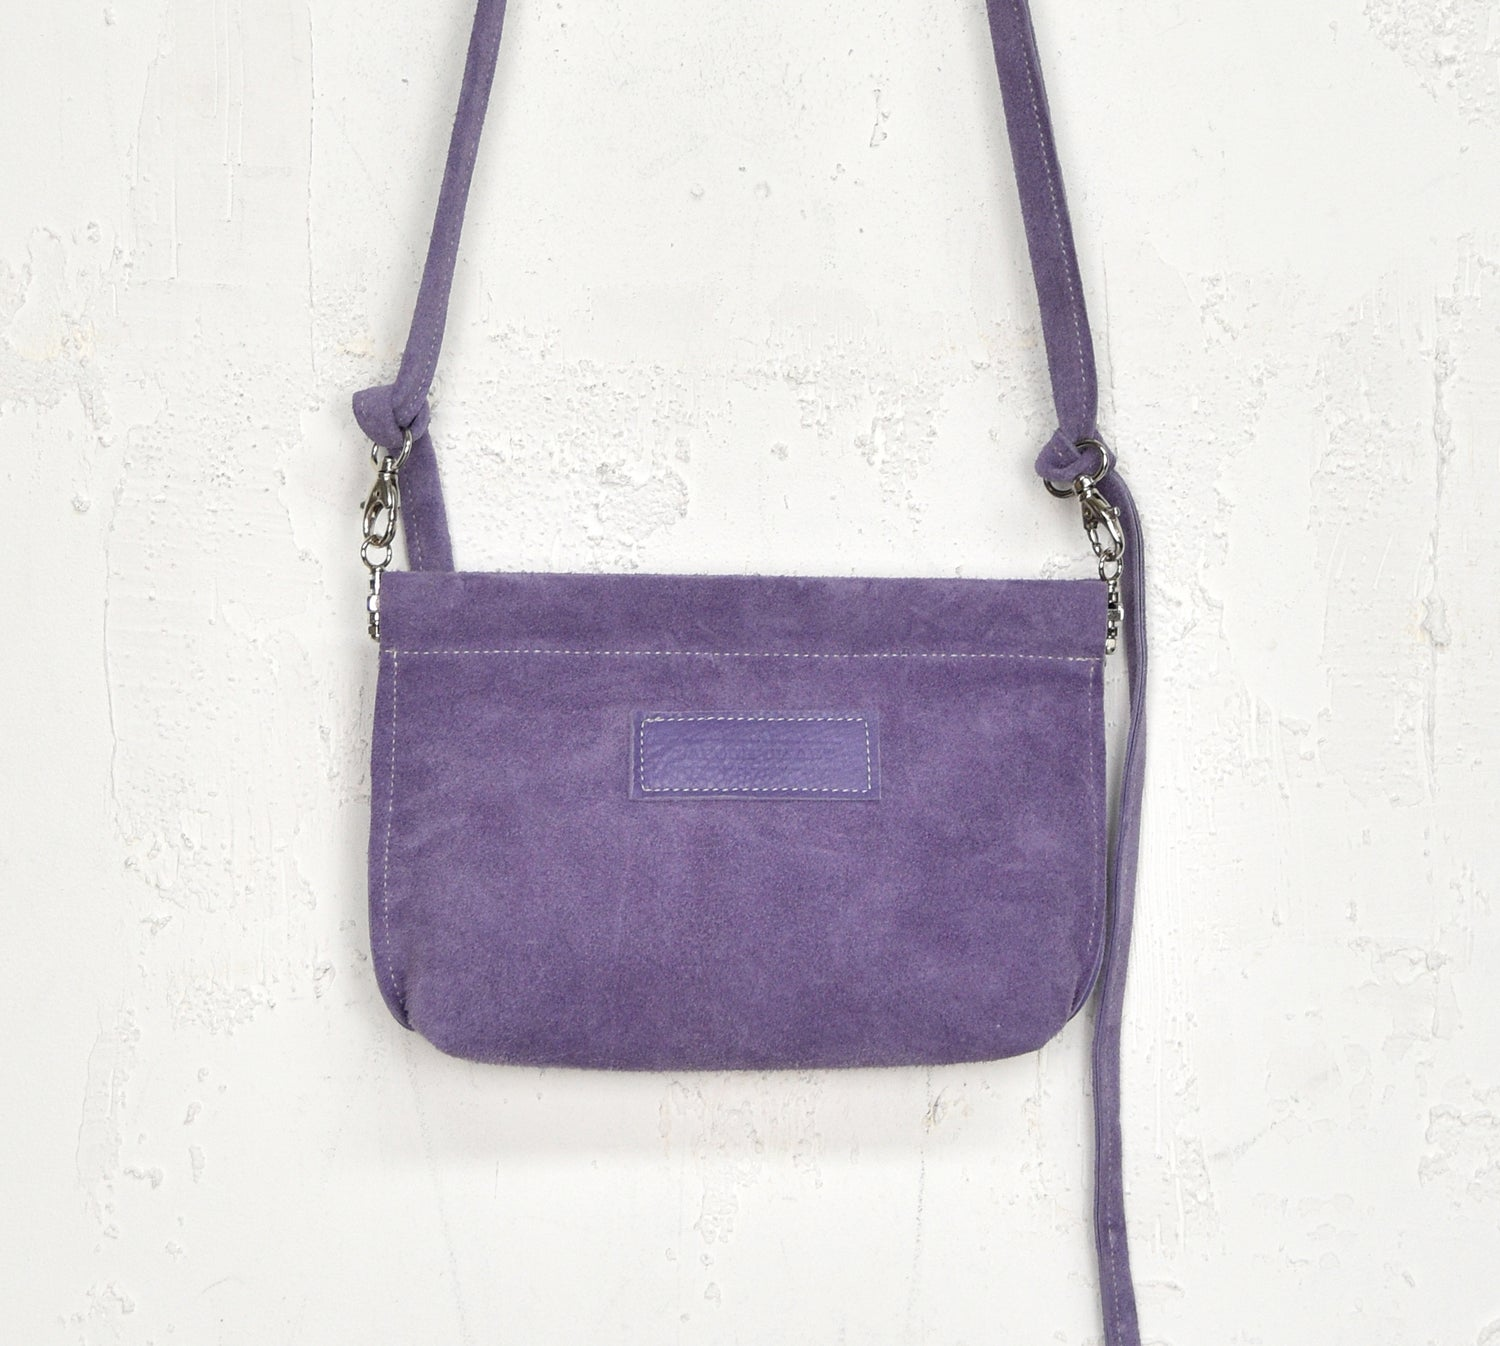 Image of Lavender Suede Purse, Leather Clip Frame Pouch